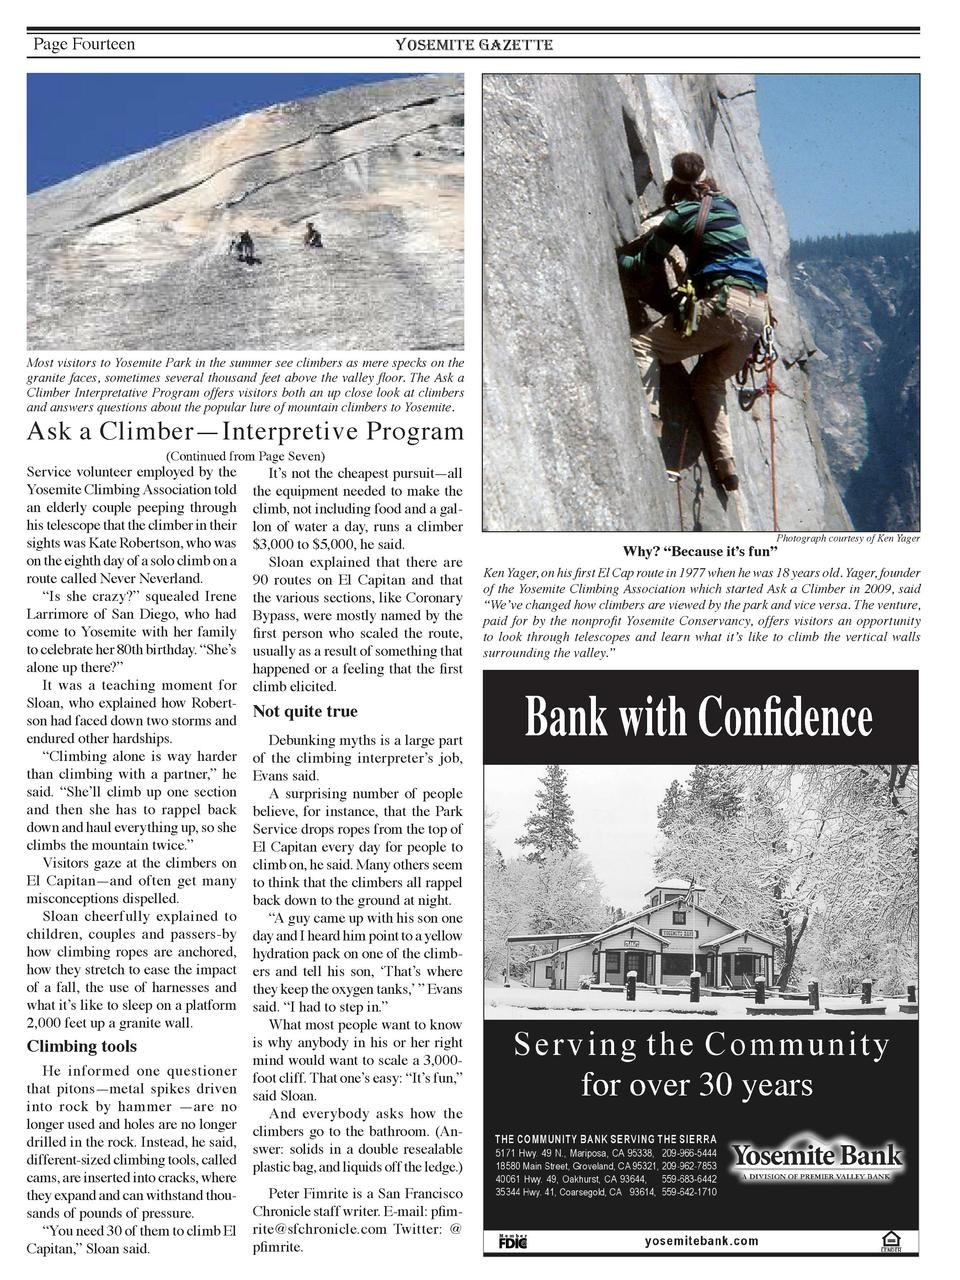 Page Fourteen  YOSEMITE GAZETTE  Most visitors to Yosemite Park in the summer see climbers as mere specks on the granite f...